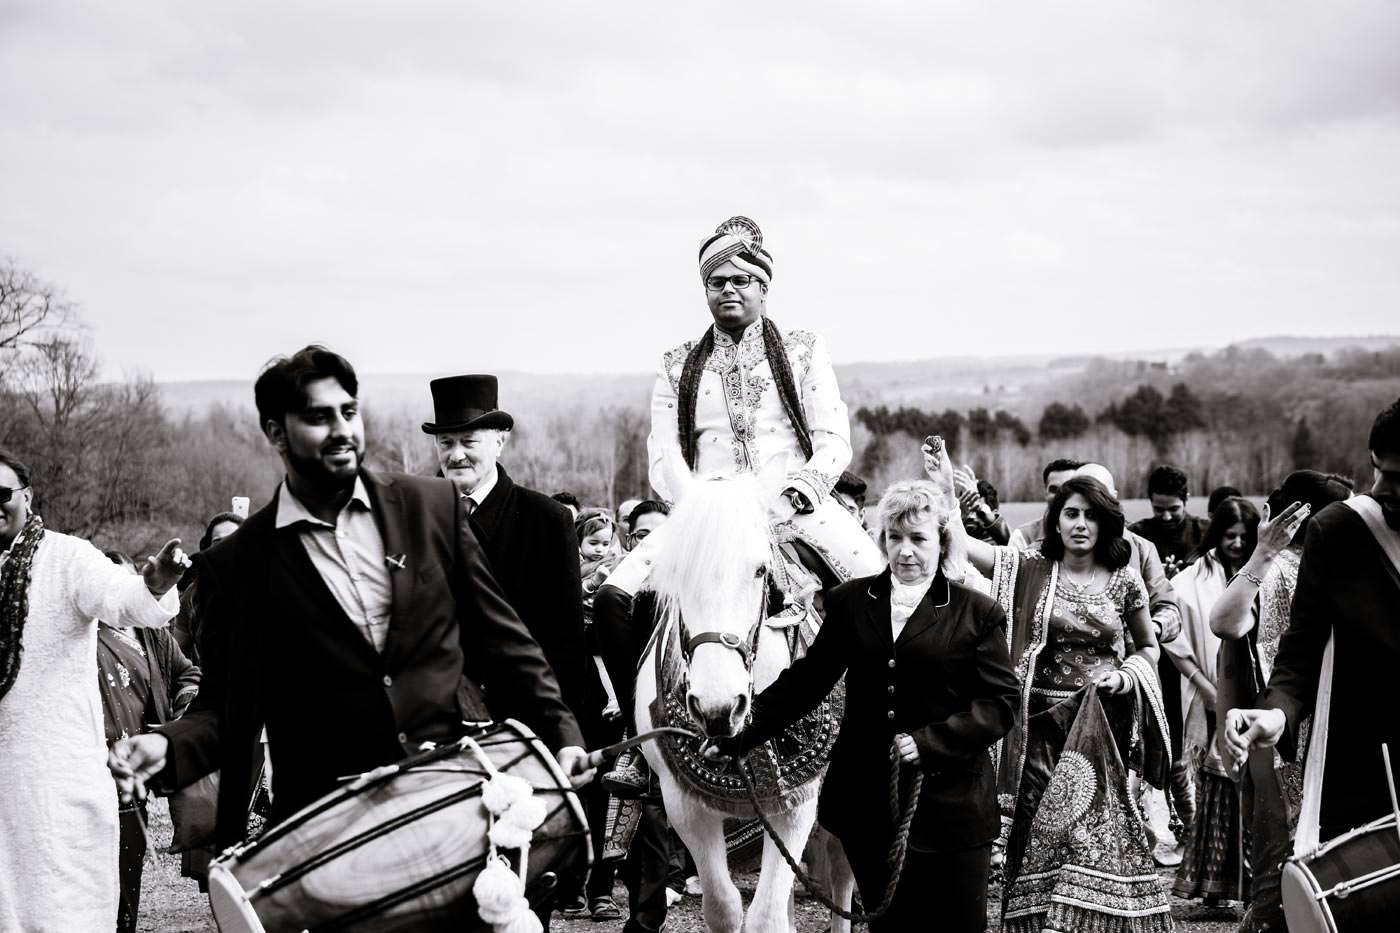 Groom on a horse arriving for his Hindu wedding at Ragley Hall